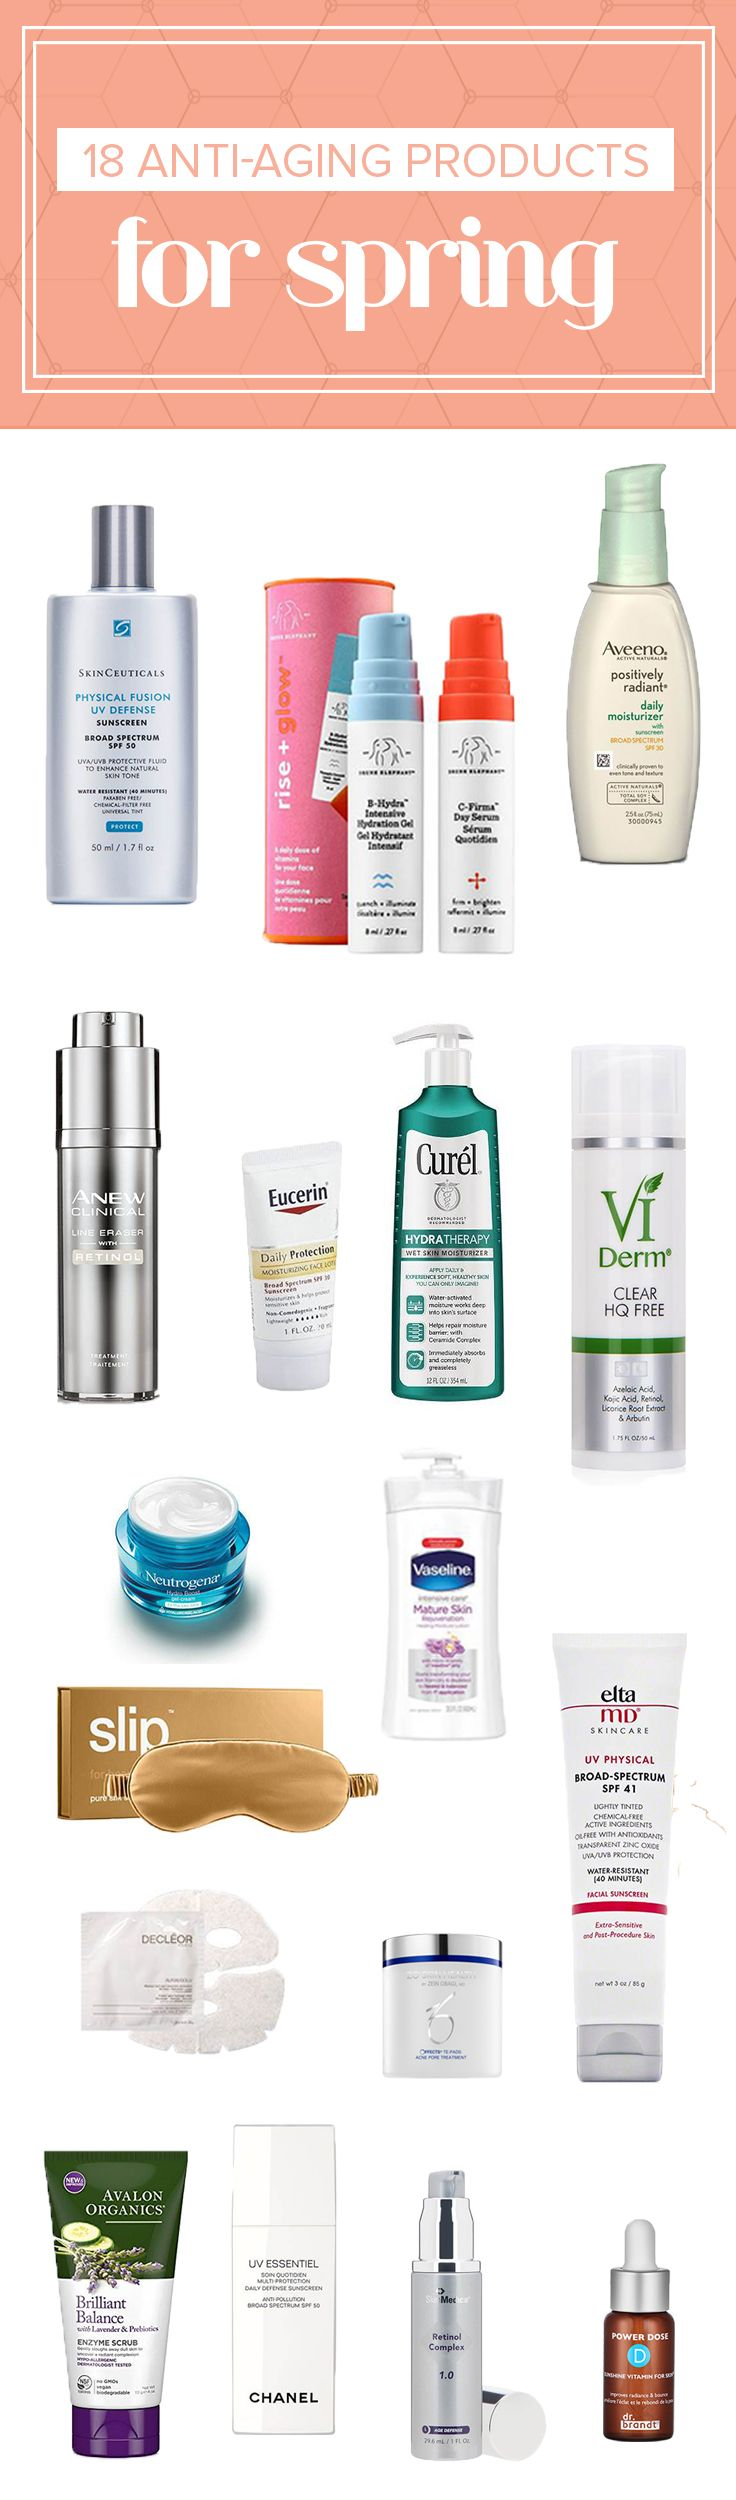 13 anti-aging products dermatologists actually use